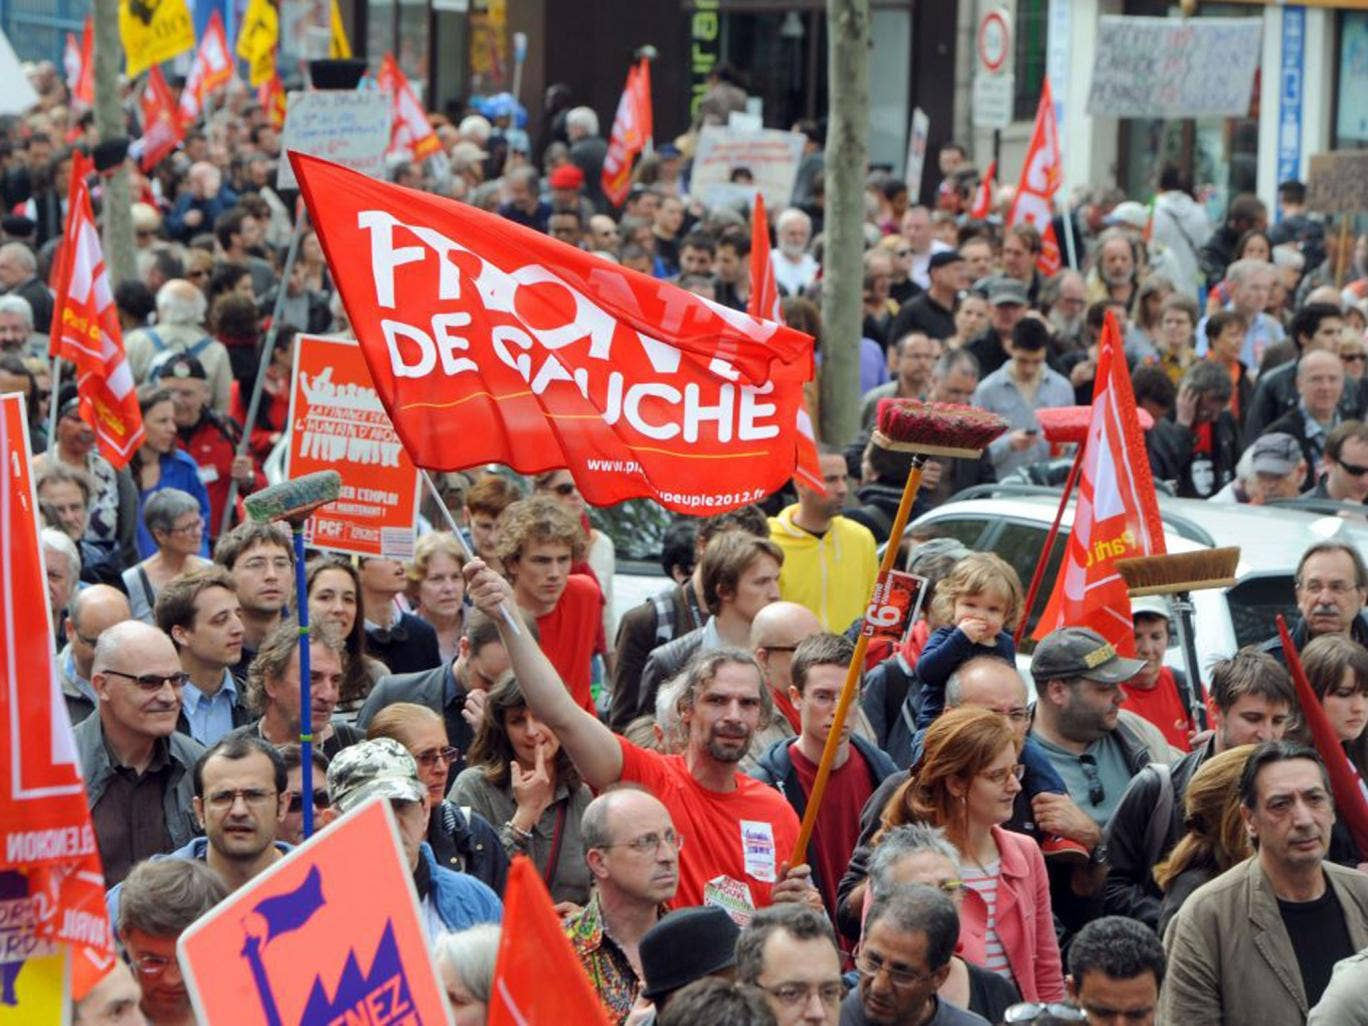 Tens of thousands of supporters of leftist parties marched through central Paris to express disappointment with President Francois Hollande's first year in power